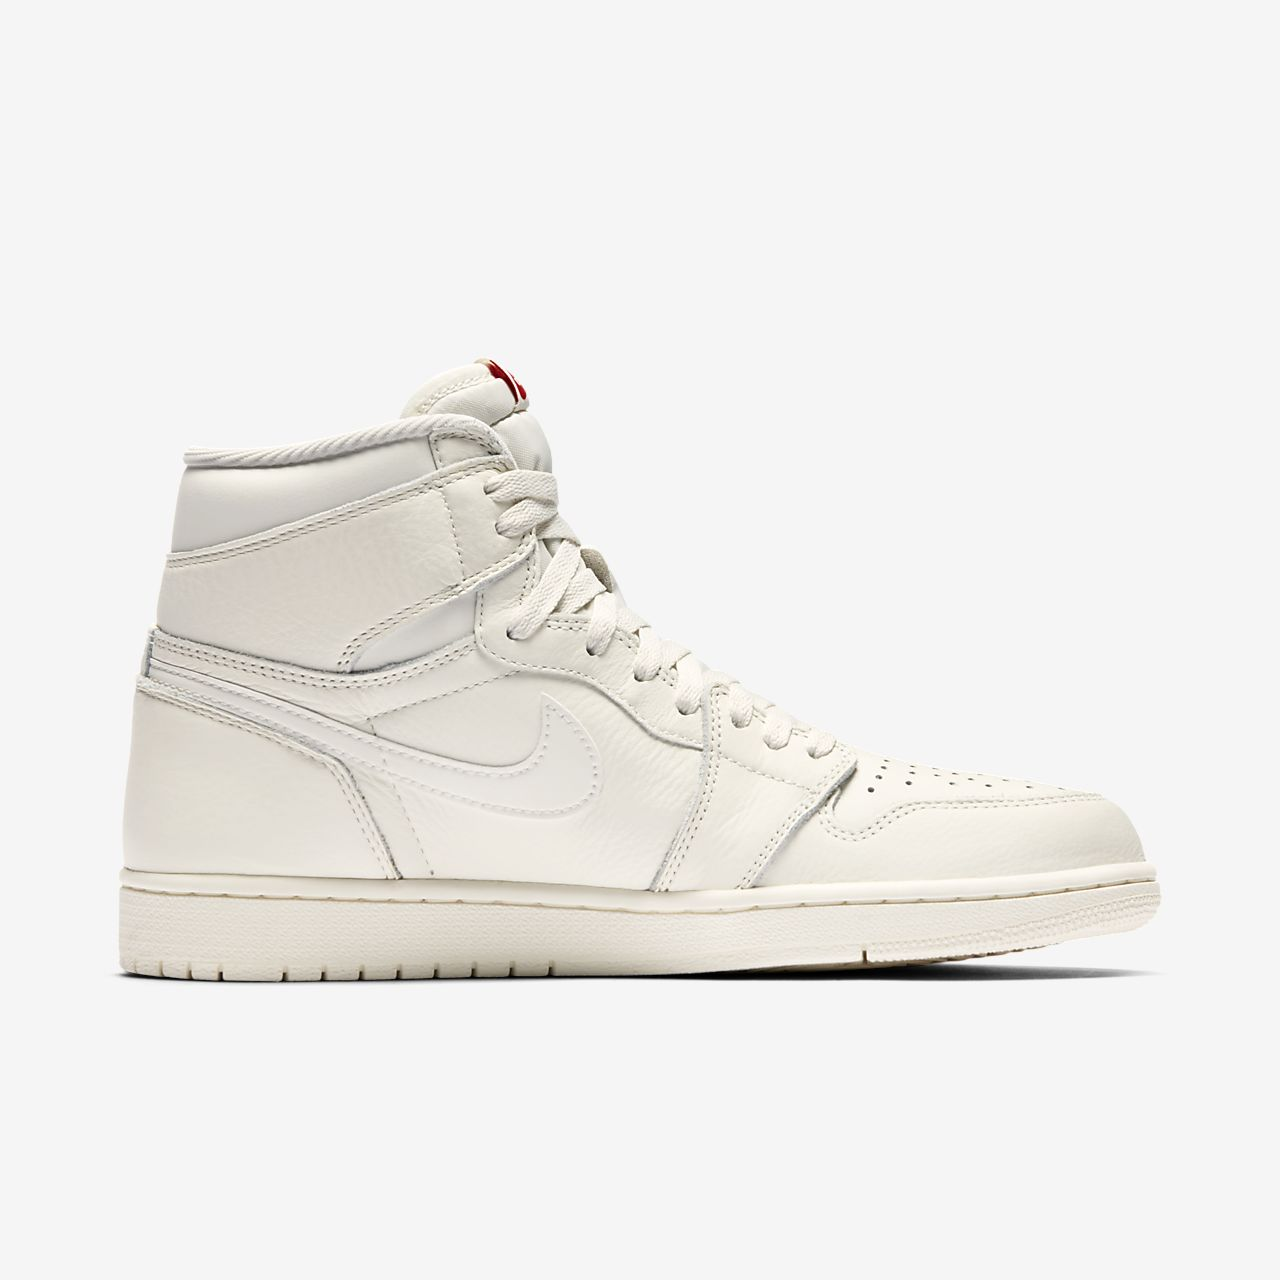 Air Jordan 1 Pinnacle White Sneaker Bar Detroit